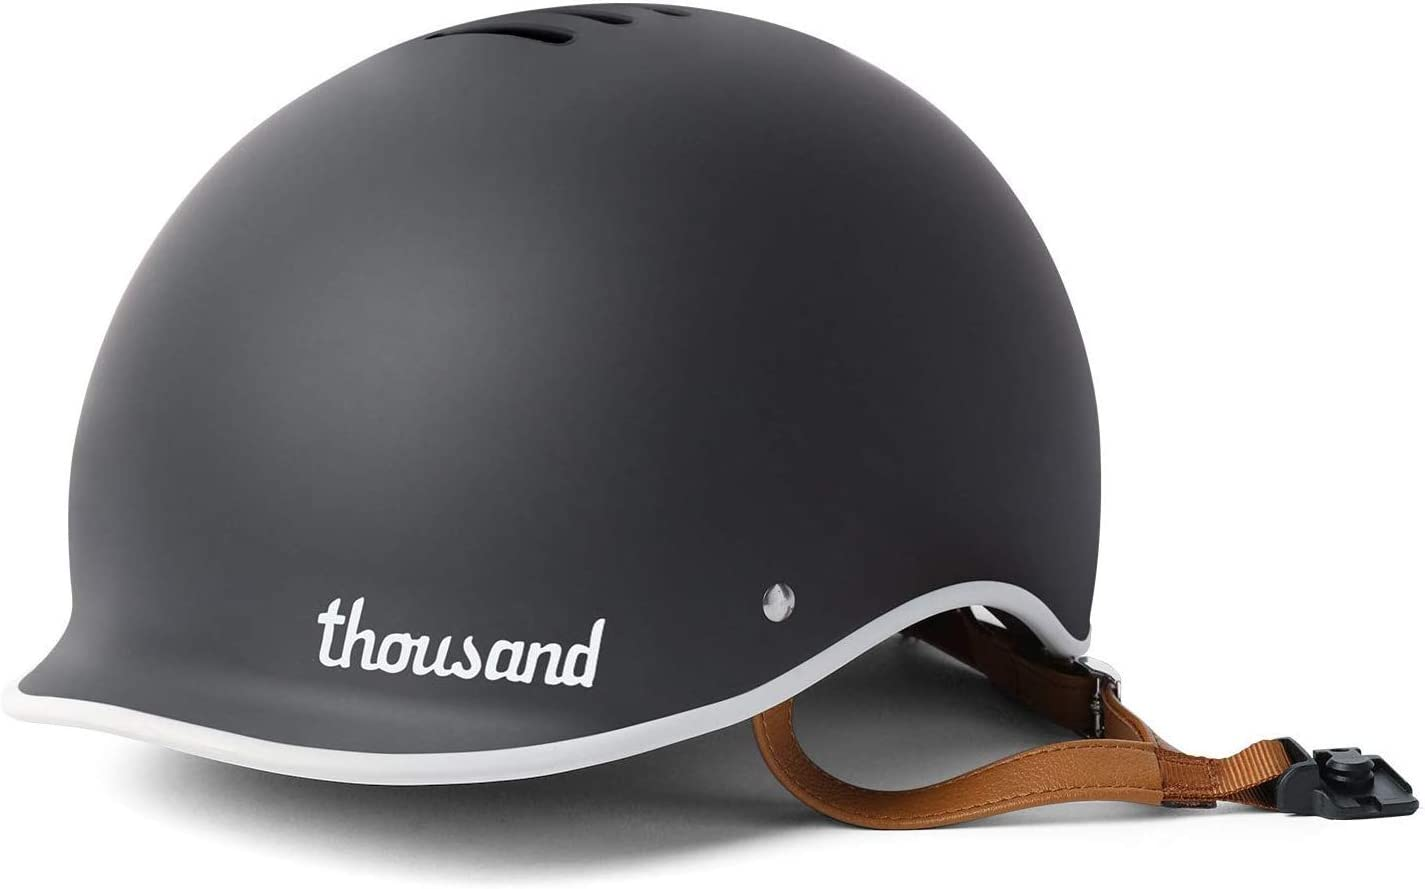 Thousand Bike Helmet Anti-Theft